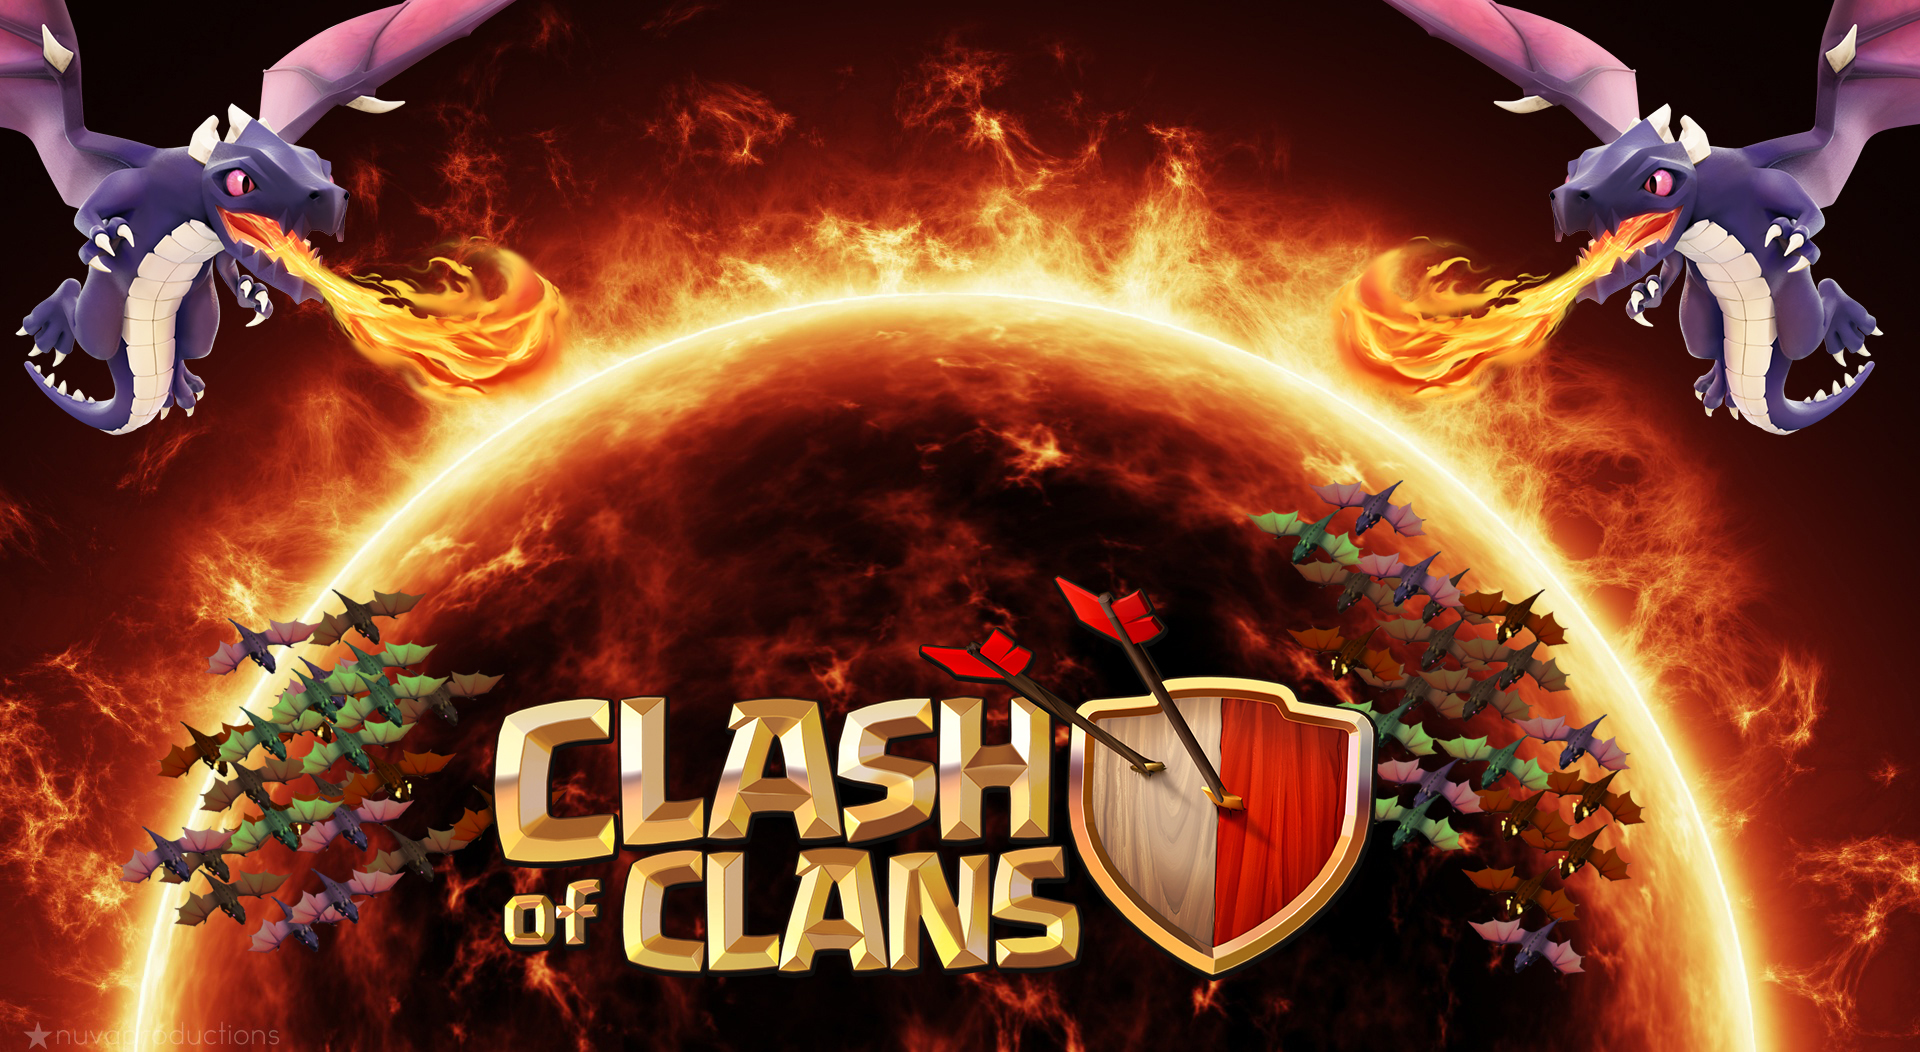 clan-artwork-clash-of-clans-dragons